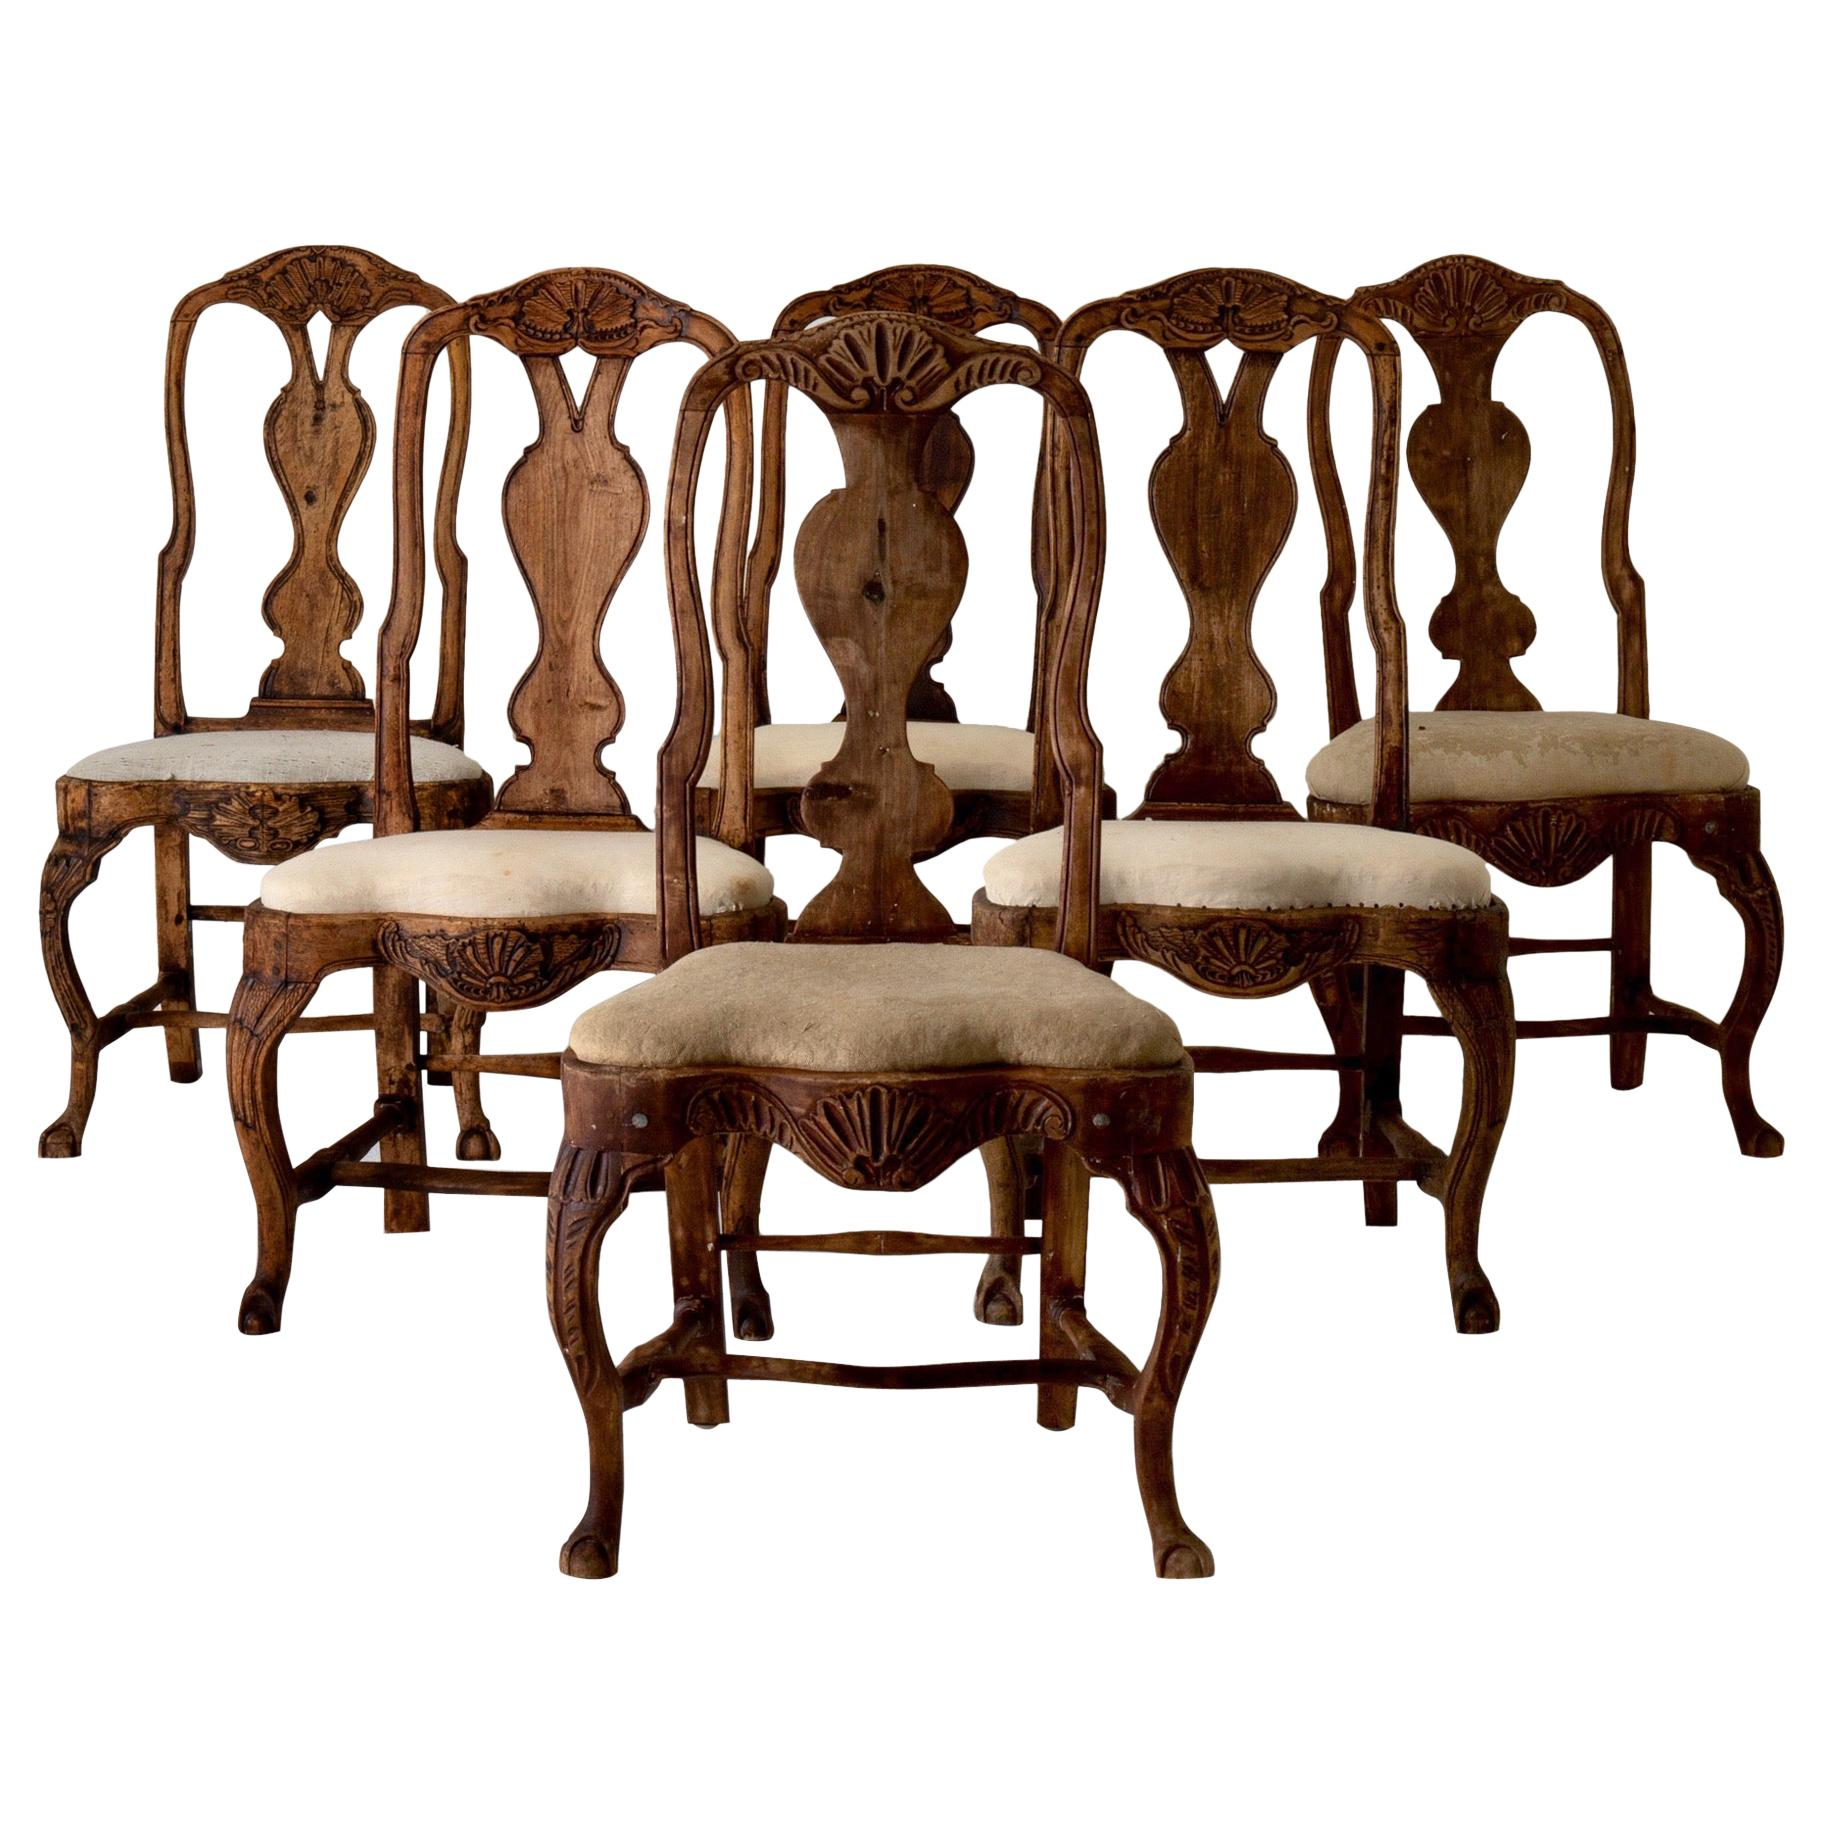 Dining Chairs Set of 6 Swedish Rococo Period 18th Century Brown Sweden